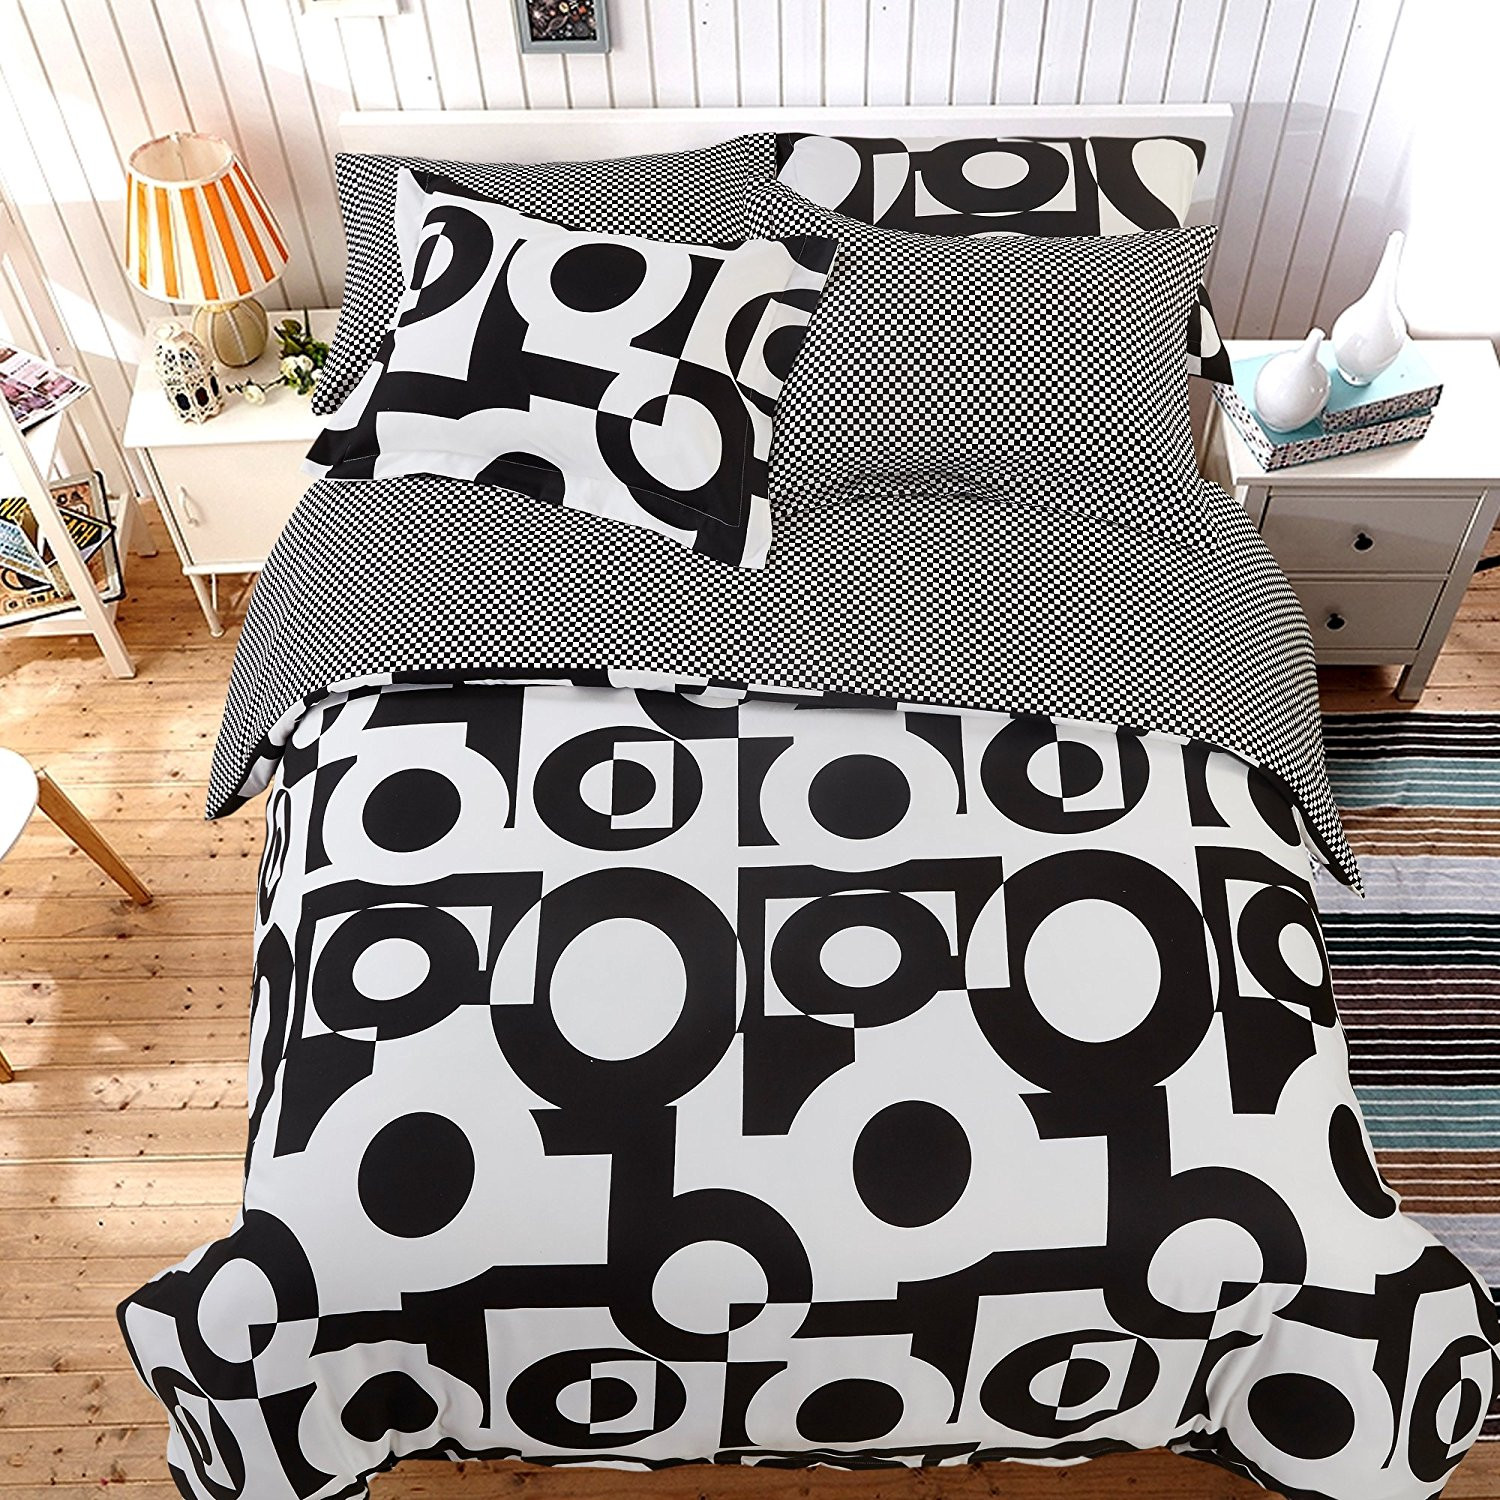 NTBAY 5 Pieces Black and White Reversible Fashionable and Simple Geometric Pattern Printed Microfiber Duvet Cover Set with Hidden Zipper, Soft & Breathable(King, Circle)